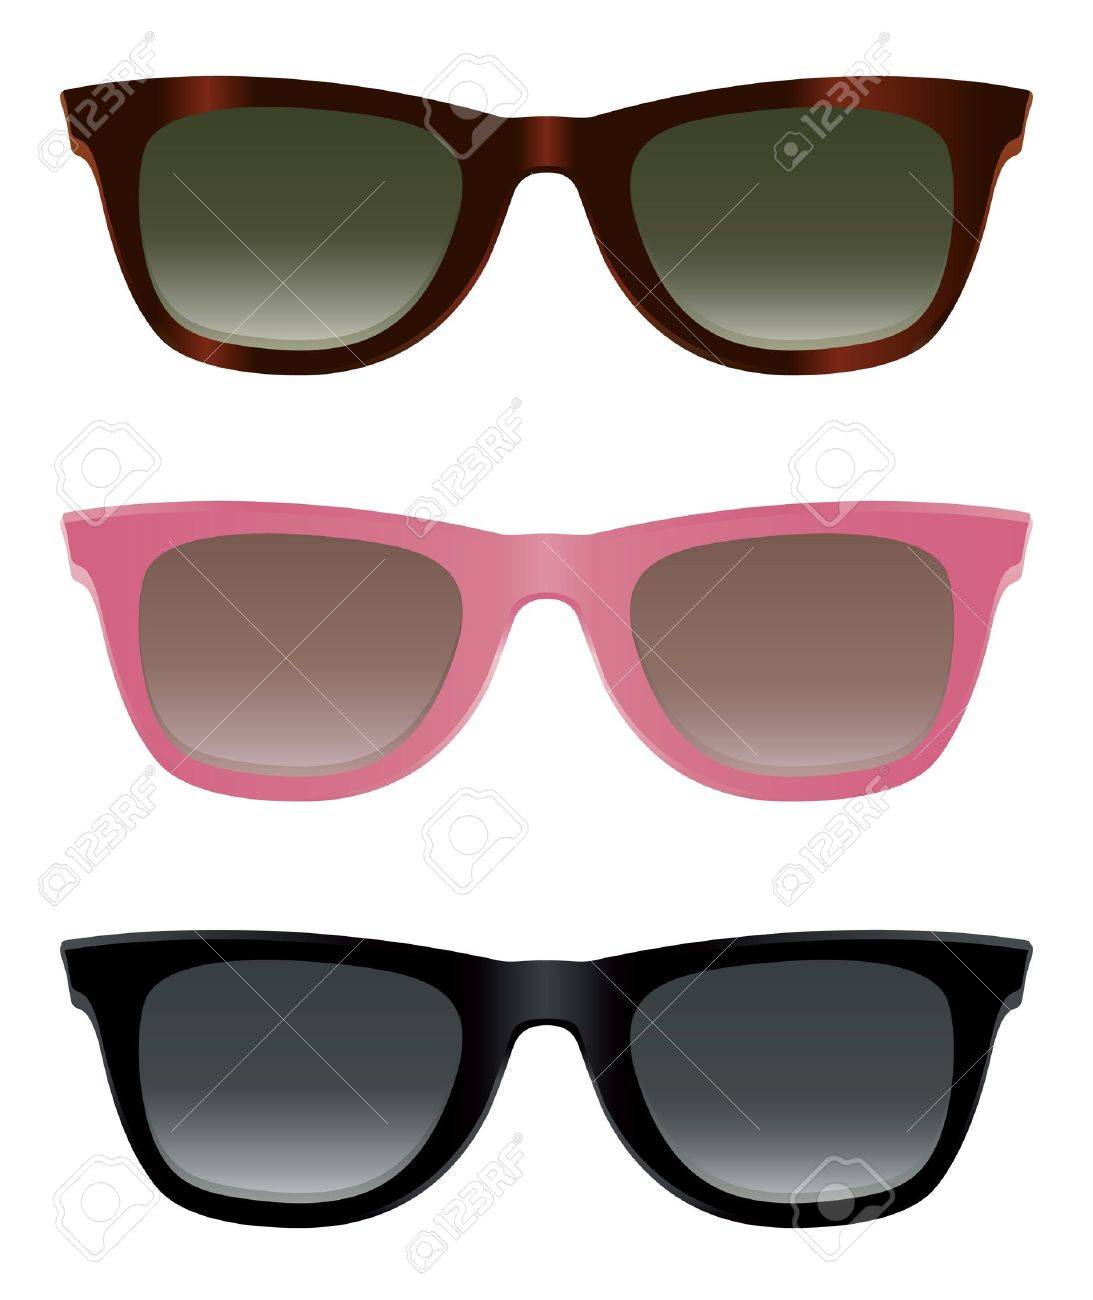 classic sunglasses with turtle shell pink and black frames